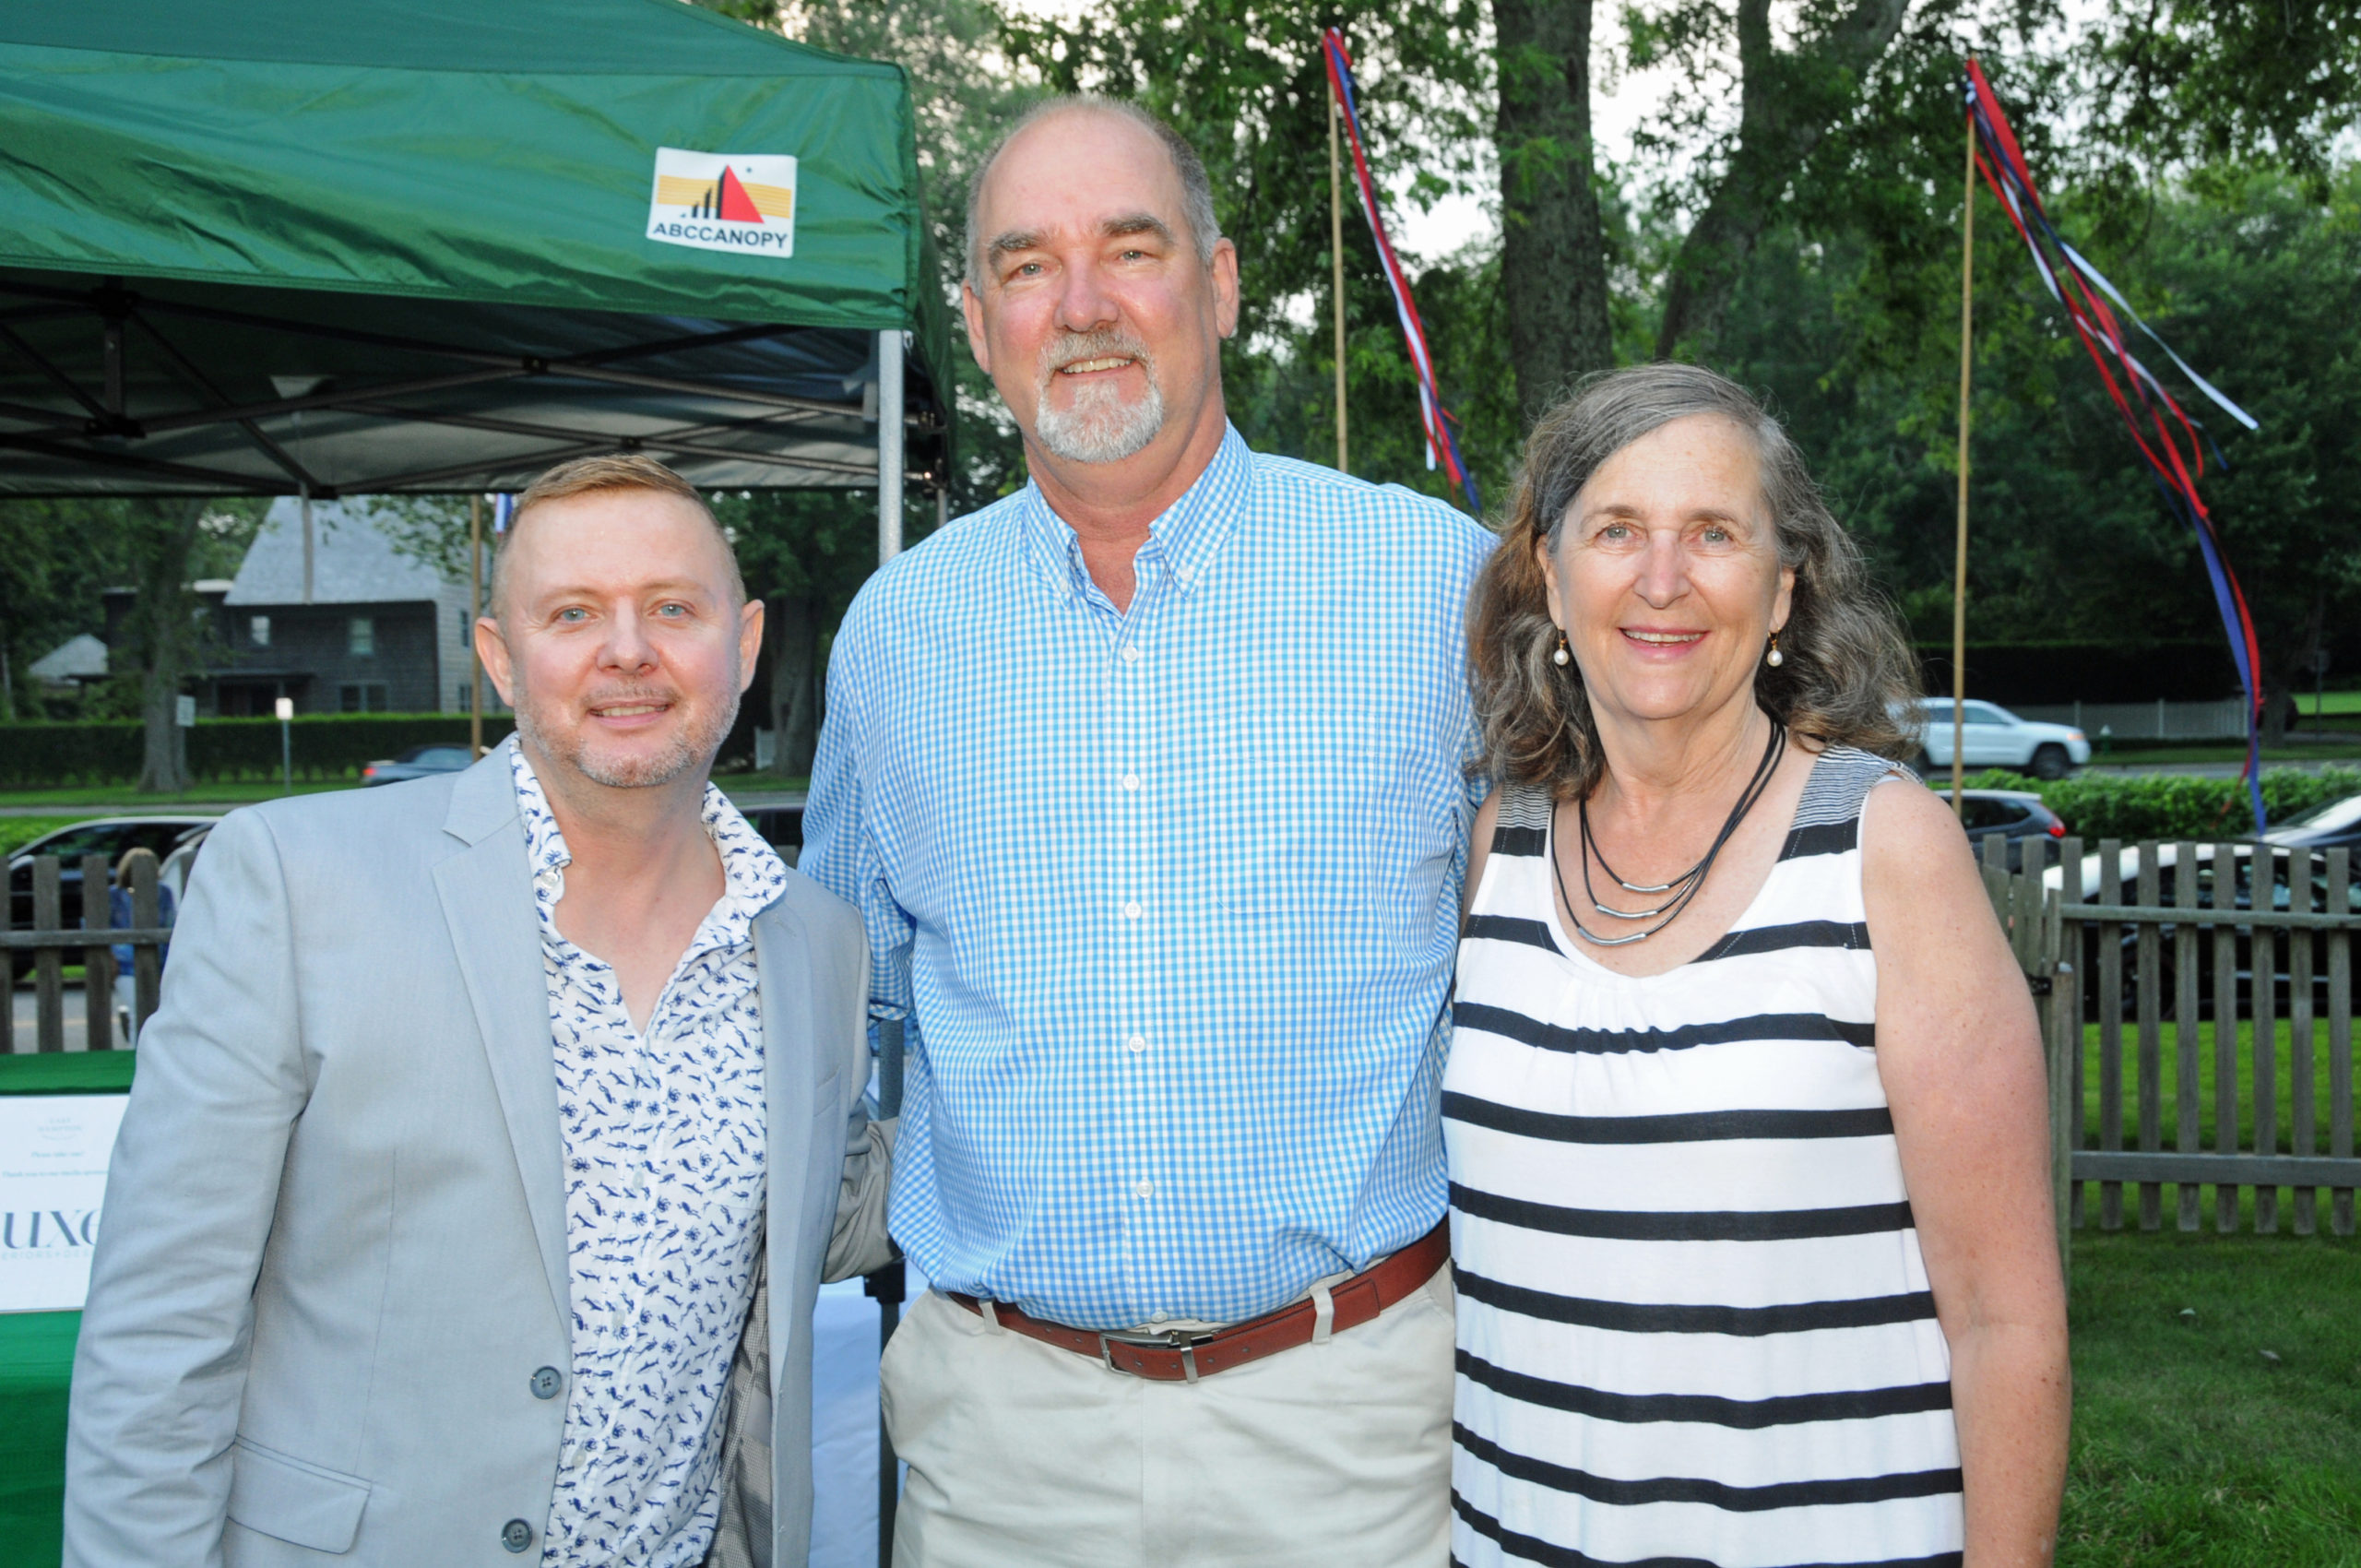 East Hampton Historical Society Interim Director Cristoff Shay with East Hampton Town Supervisor Peter Van Scoyoc and Marilyn Van Scoyoc at the  East Hampton Historical Society's preview benefit cocktail party for the 2021 East Hampton Antiques & Design Show on Friday evening on the grounds of Mulford Farm. RICHARD LEWIN